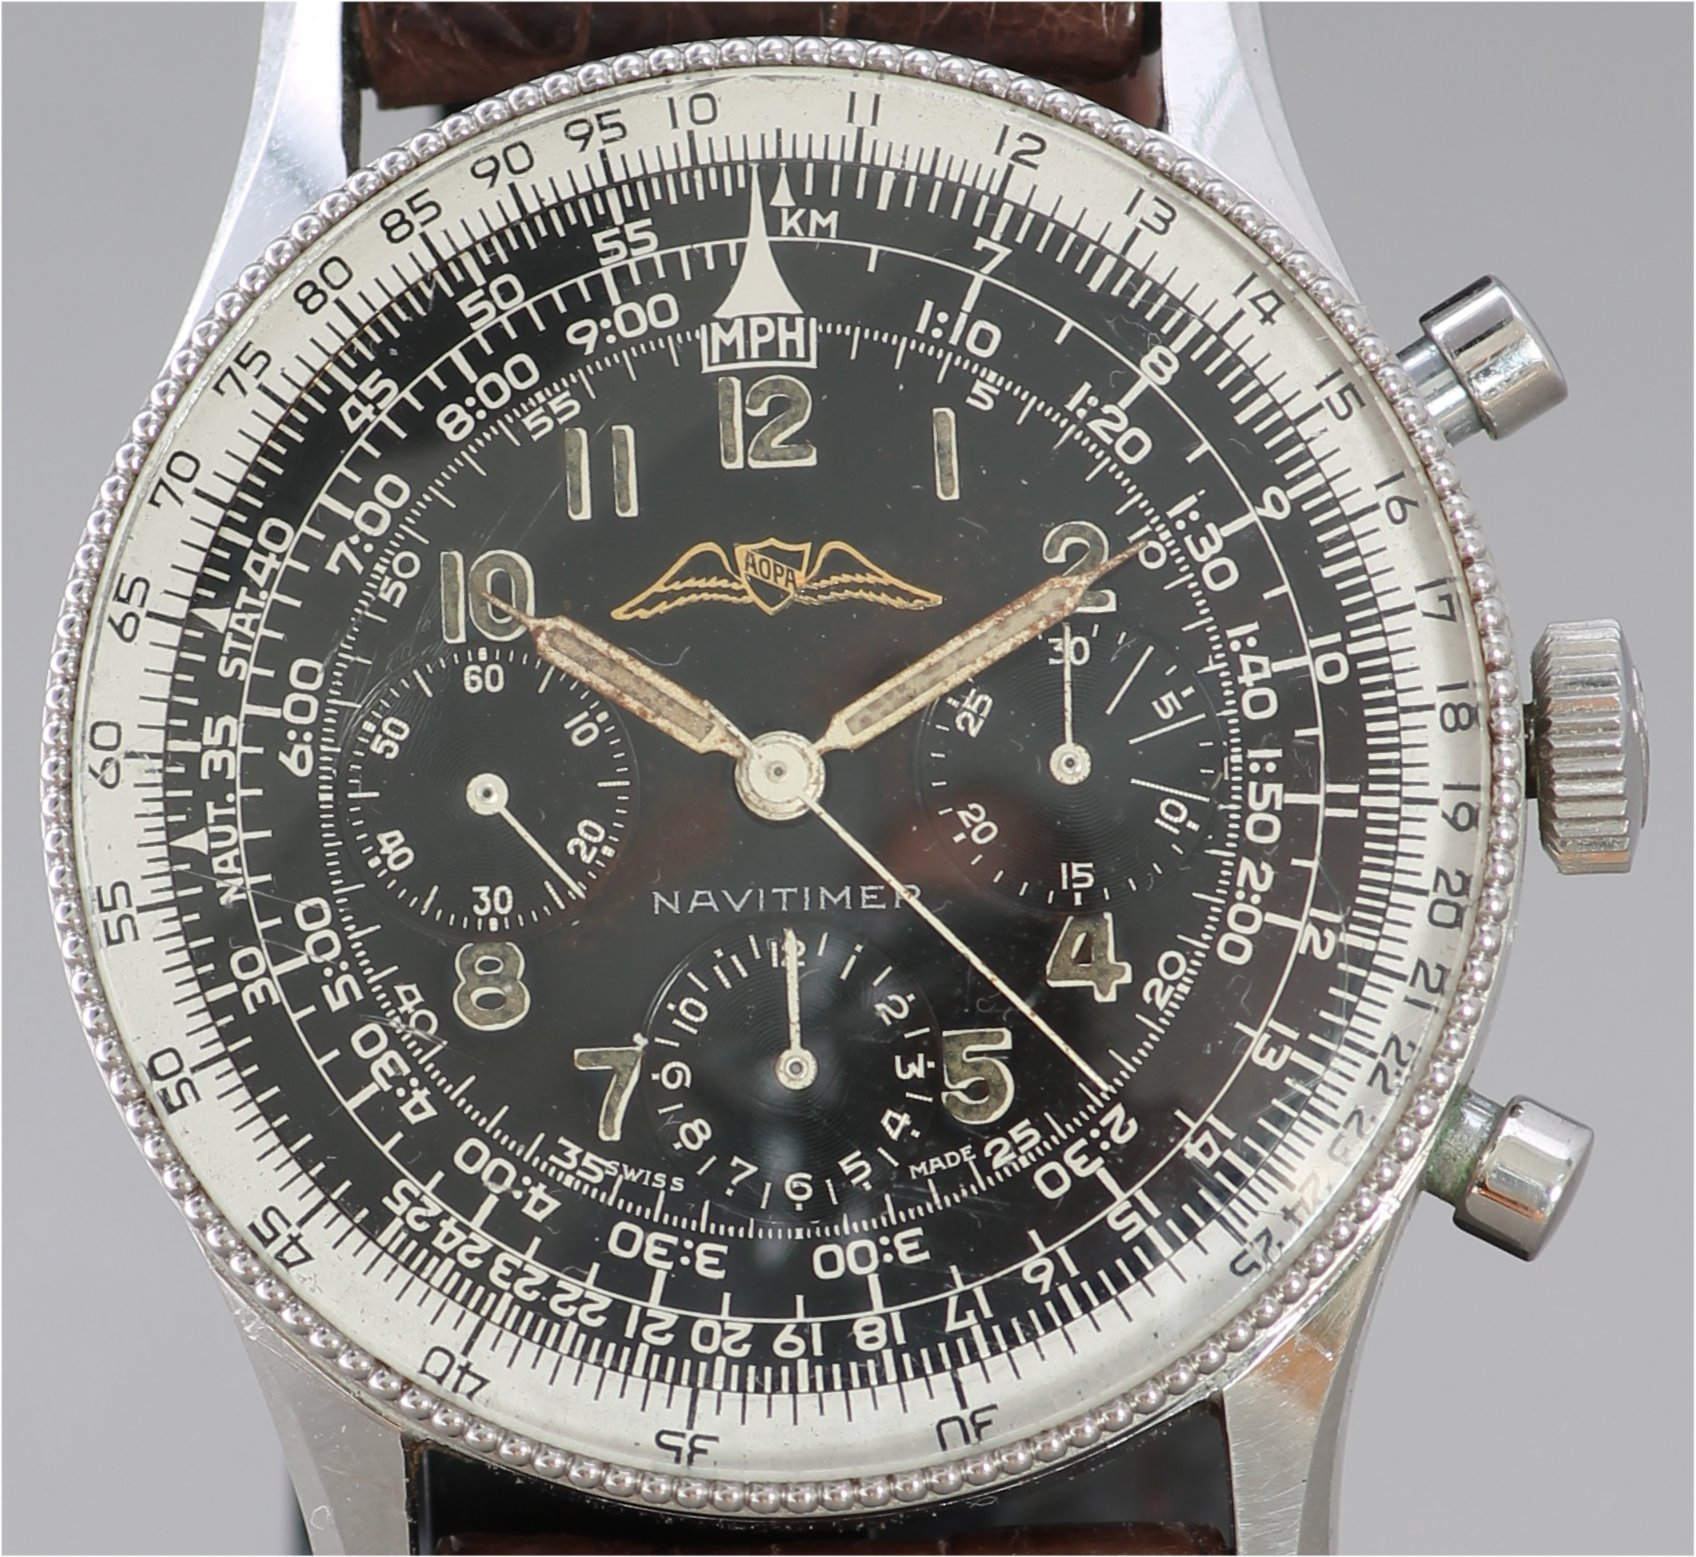 2d6259432 Breitling Navitimer 1954 with Valjoux 72 movement - Vintage ...